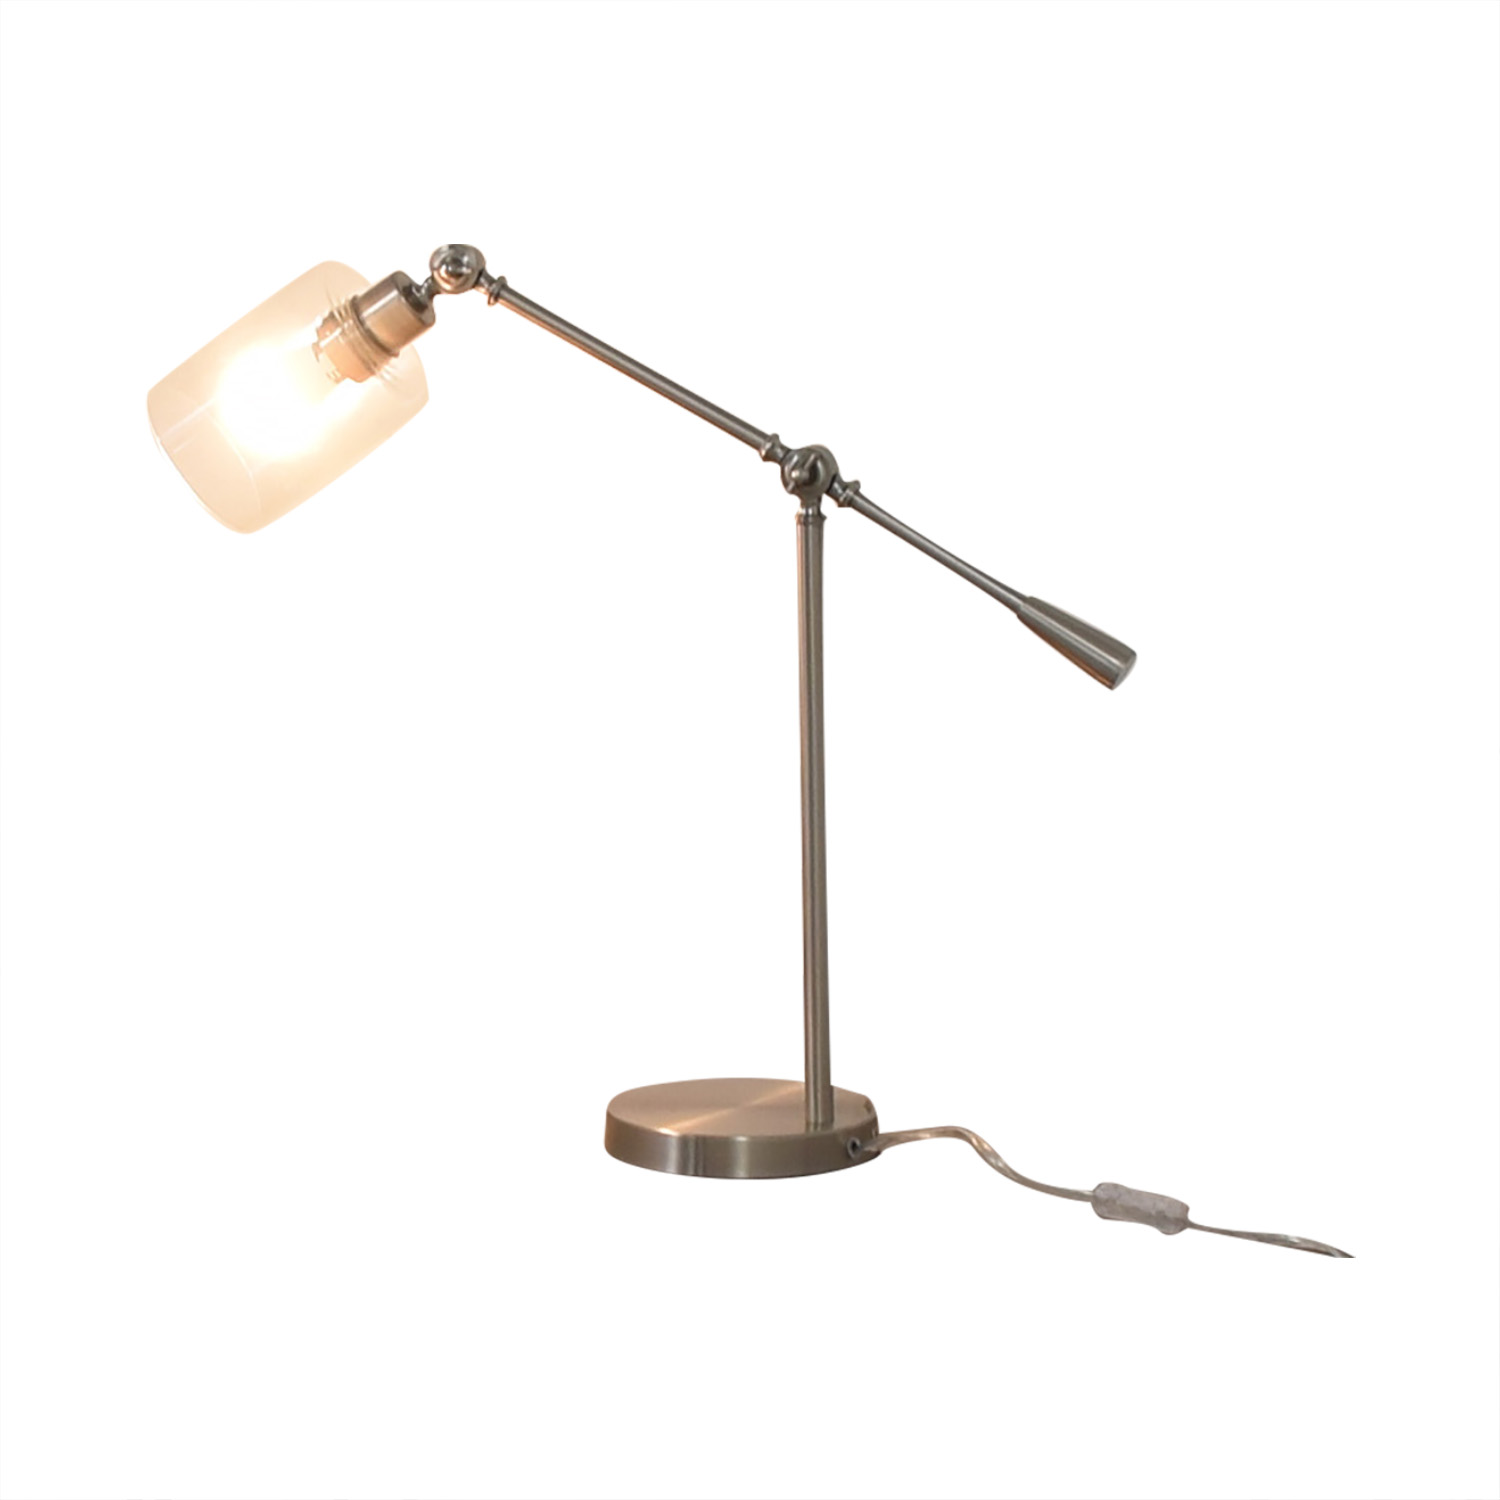 Wayfair Wayfair Great Smoky Desk Lamp price